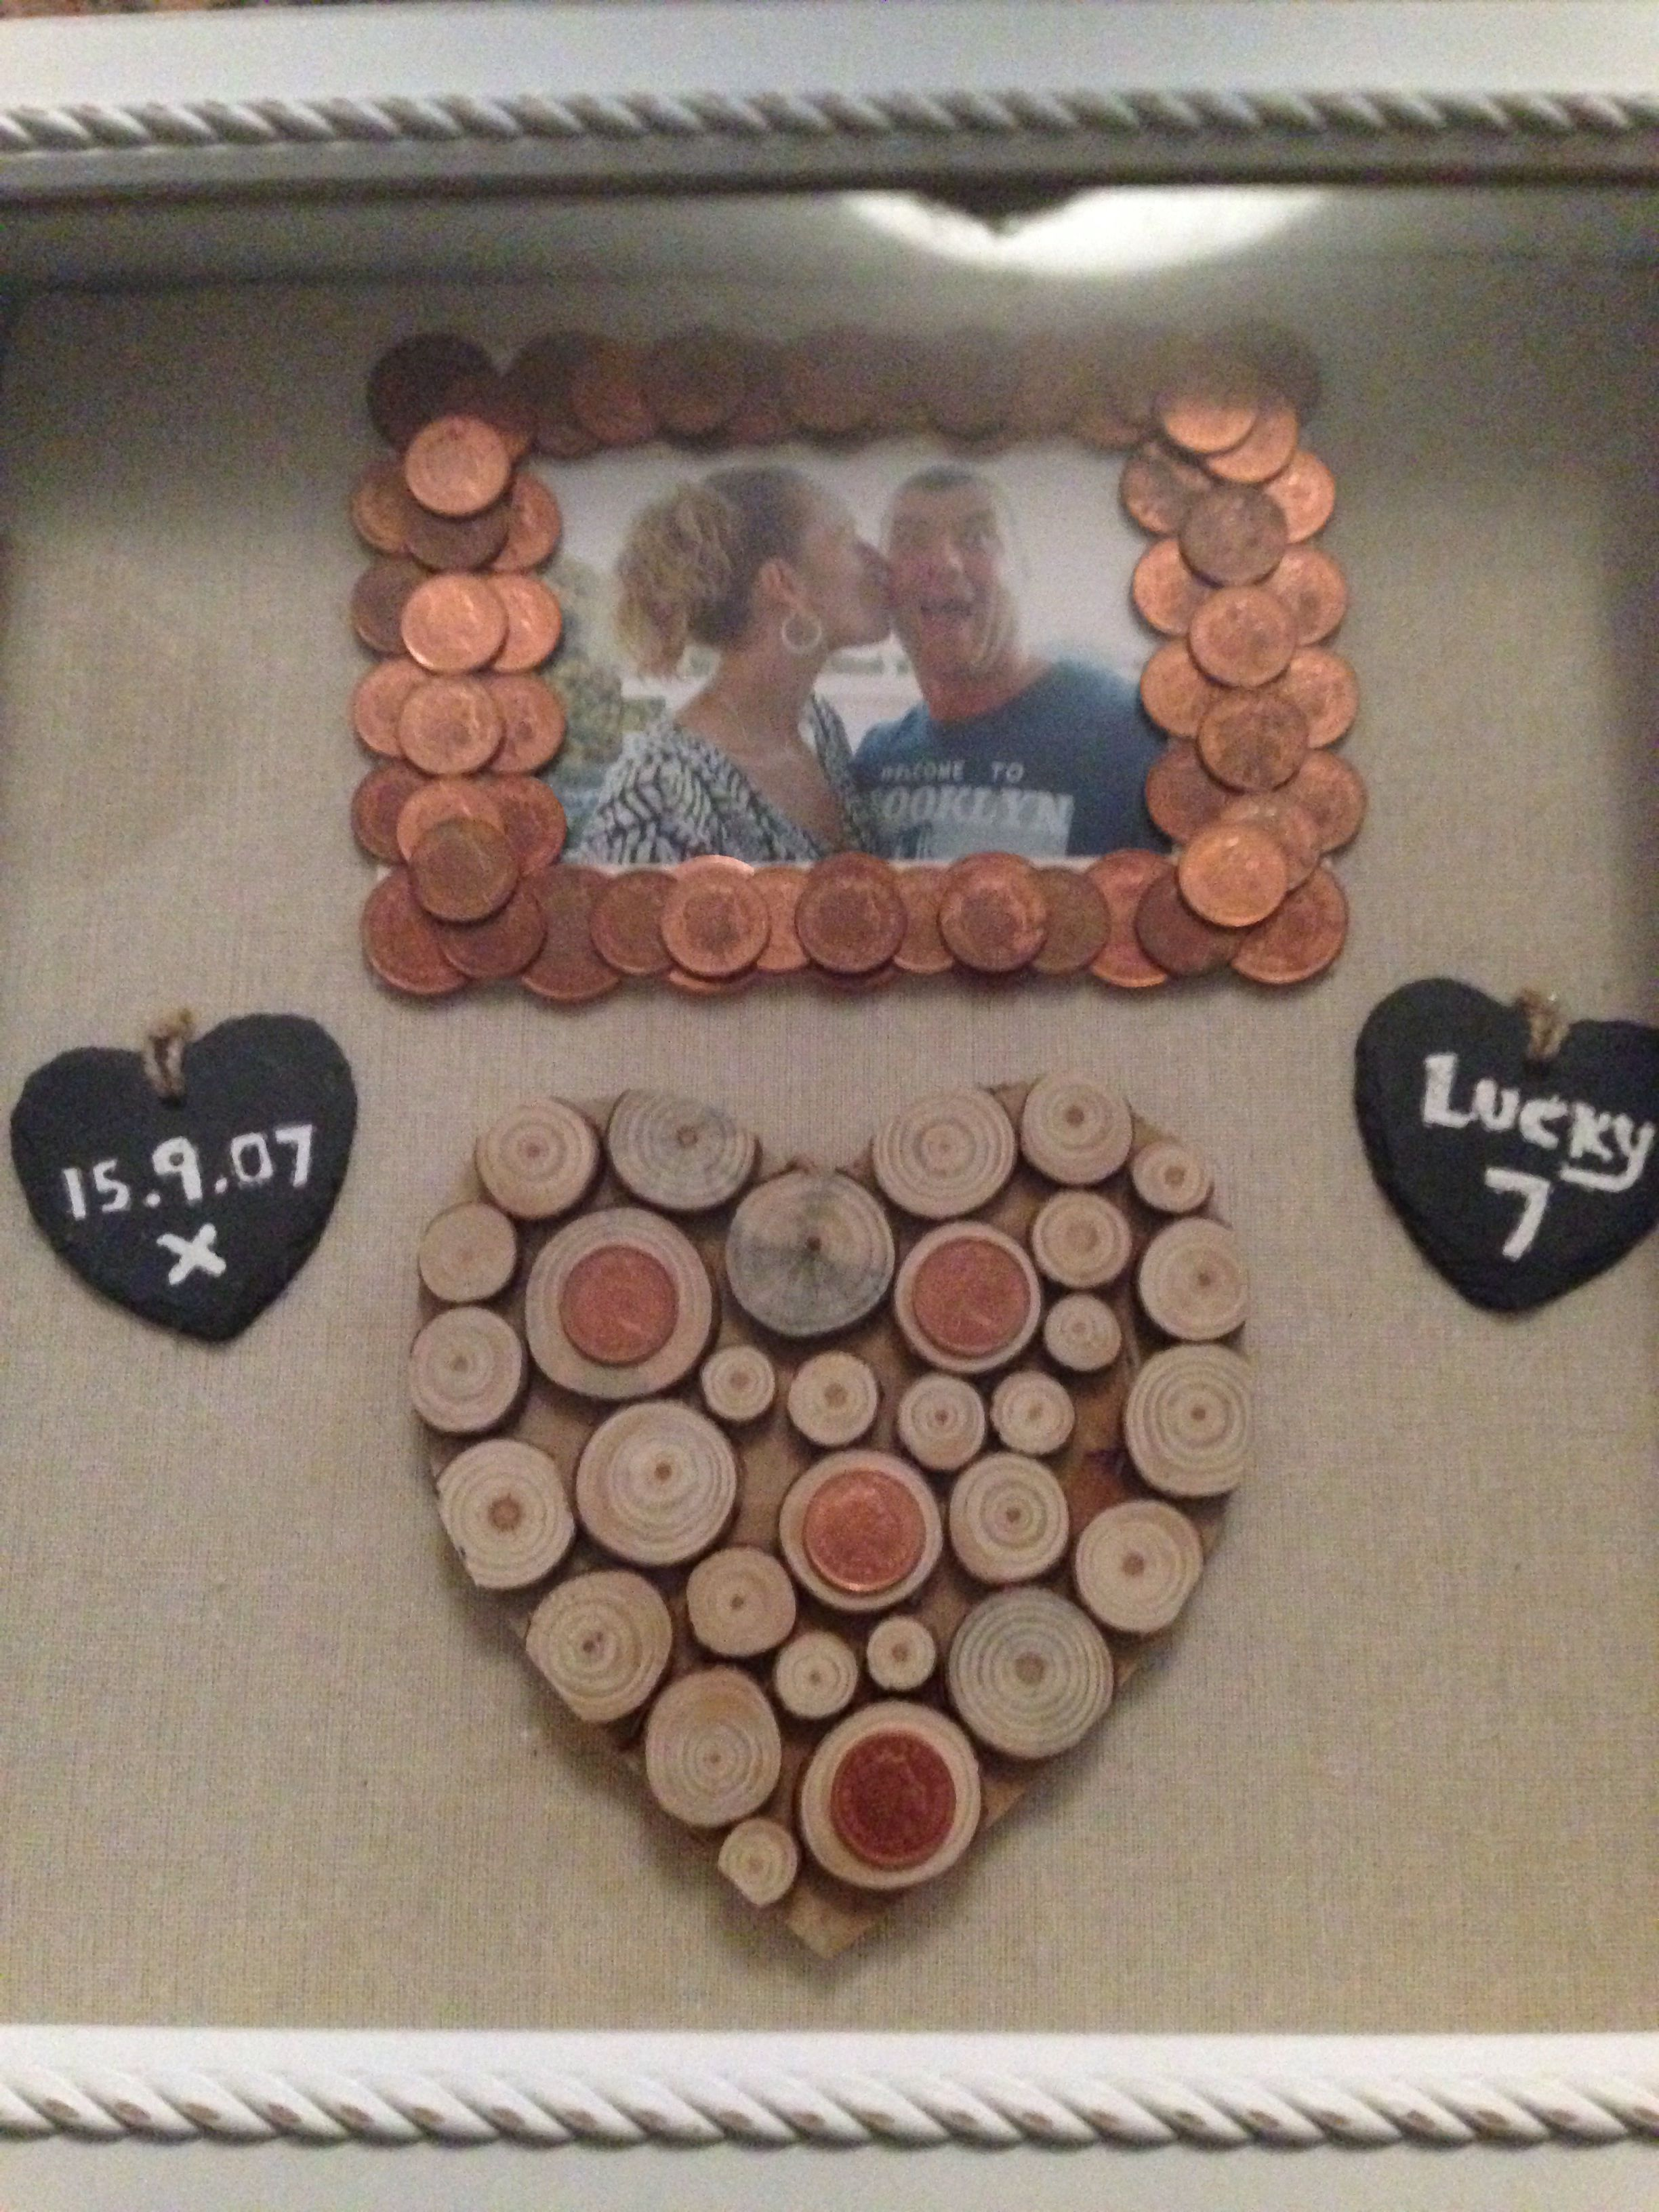 7th Wedding Anniversary Gift To My Husband X 7 Years Is Copper So All 1p And 2p 7th Anniversary Gifts Diy Anniversary Gifts For Him Seven Year Anniversary Gift